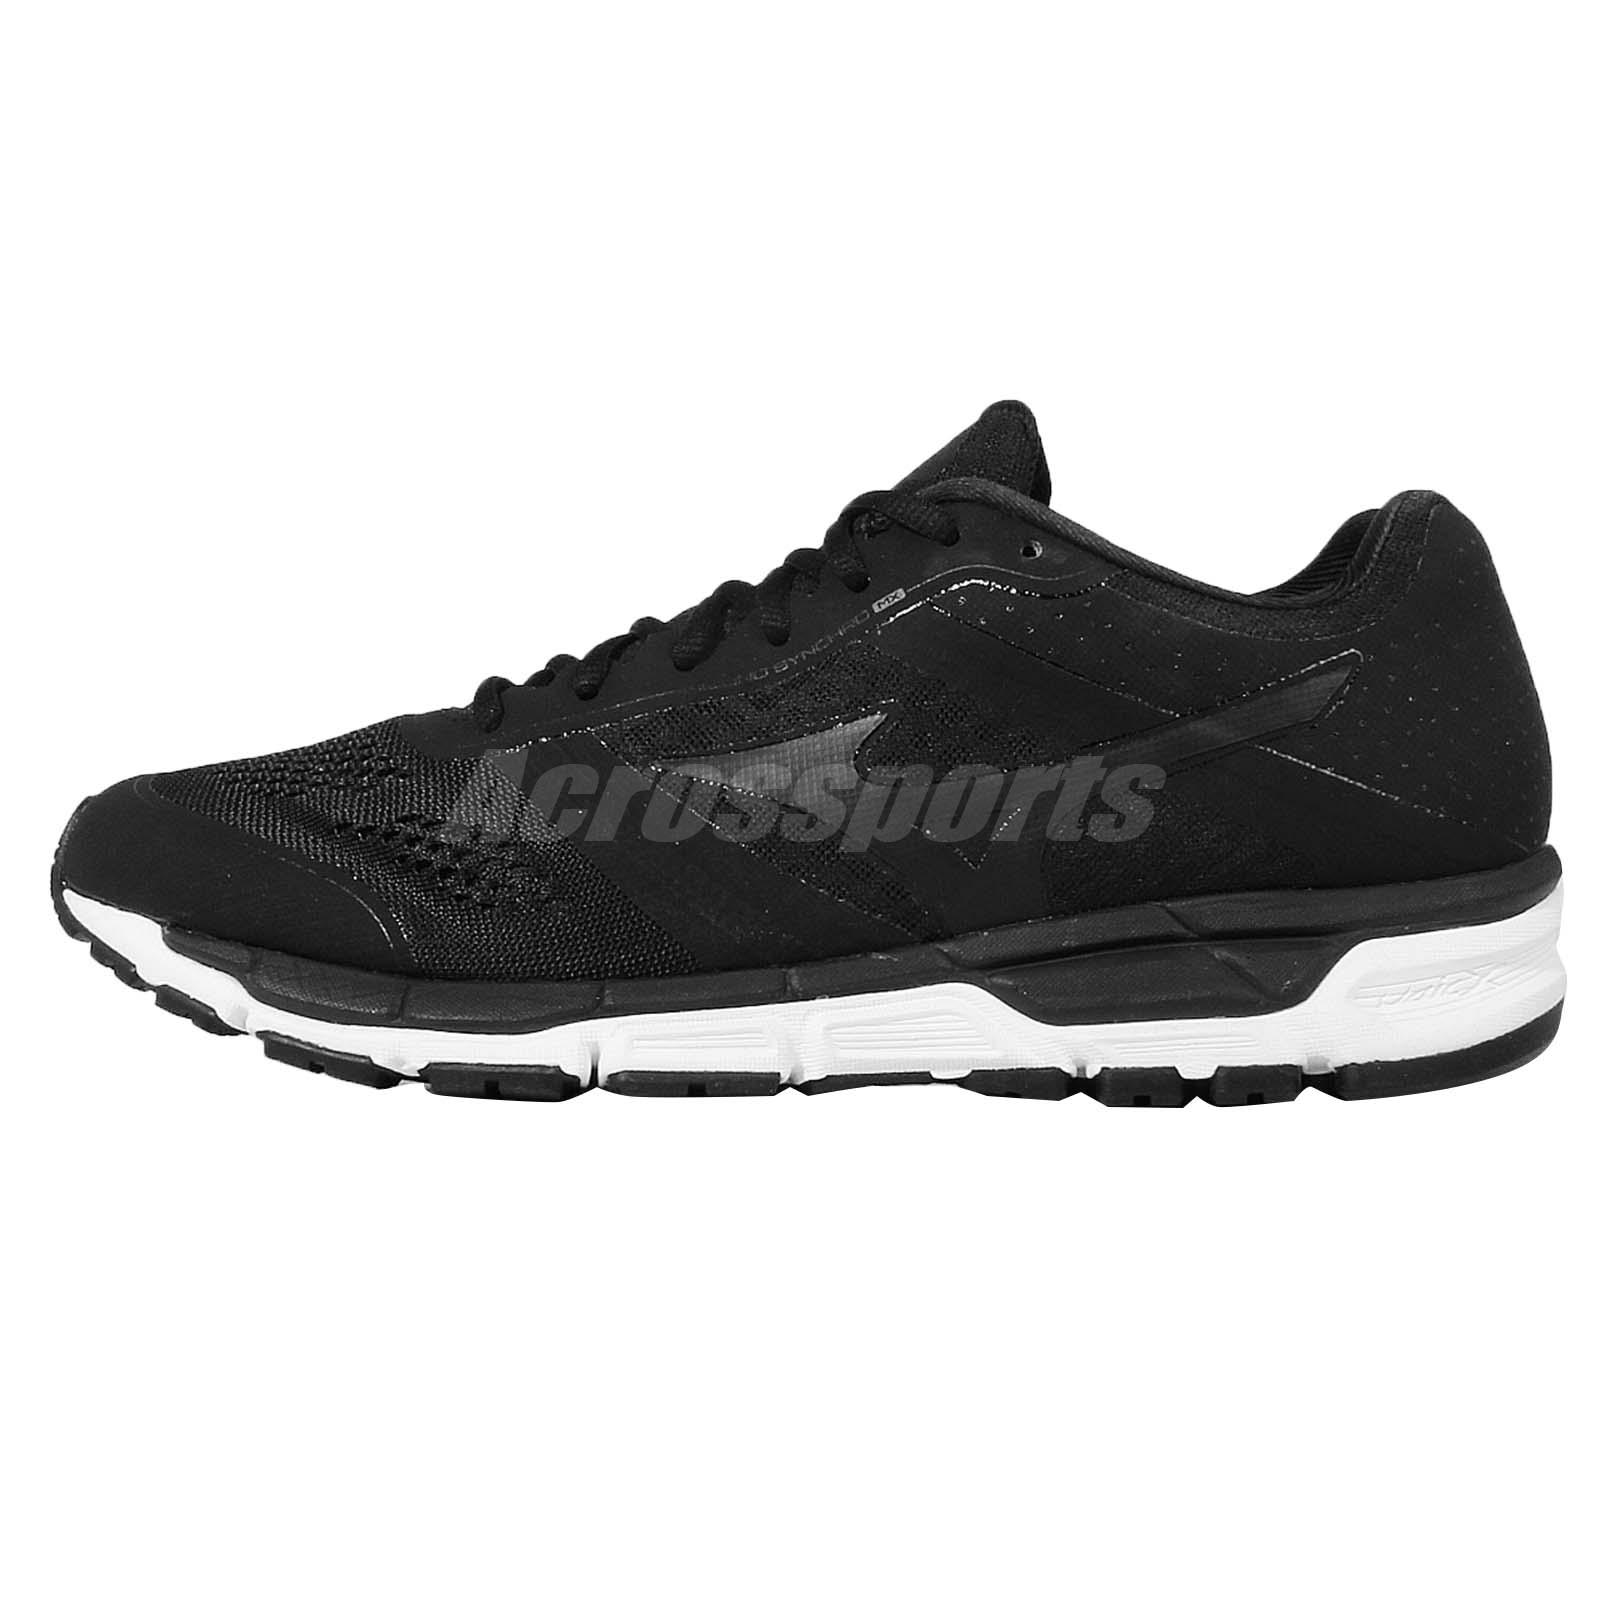 Mizuno Synchro MX Black White Mens Running Shoes Trainers J1GE16-1912